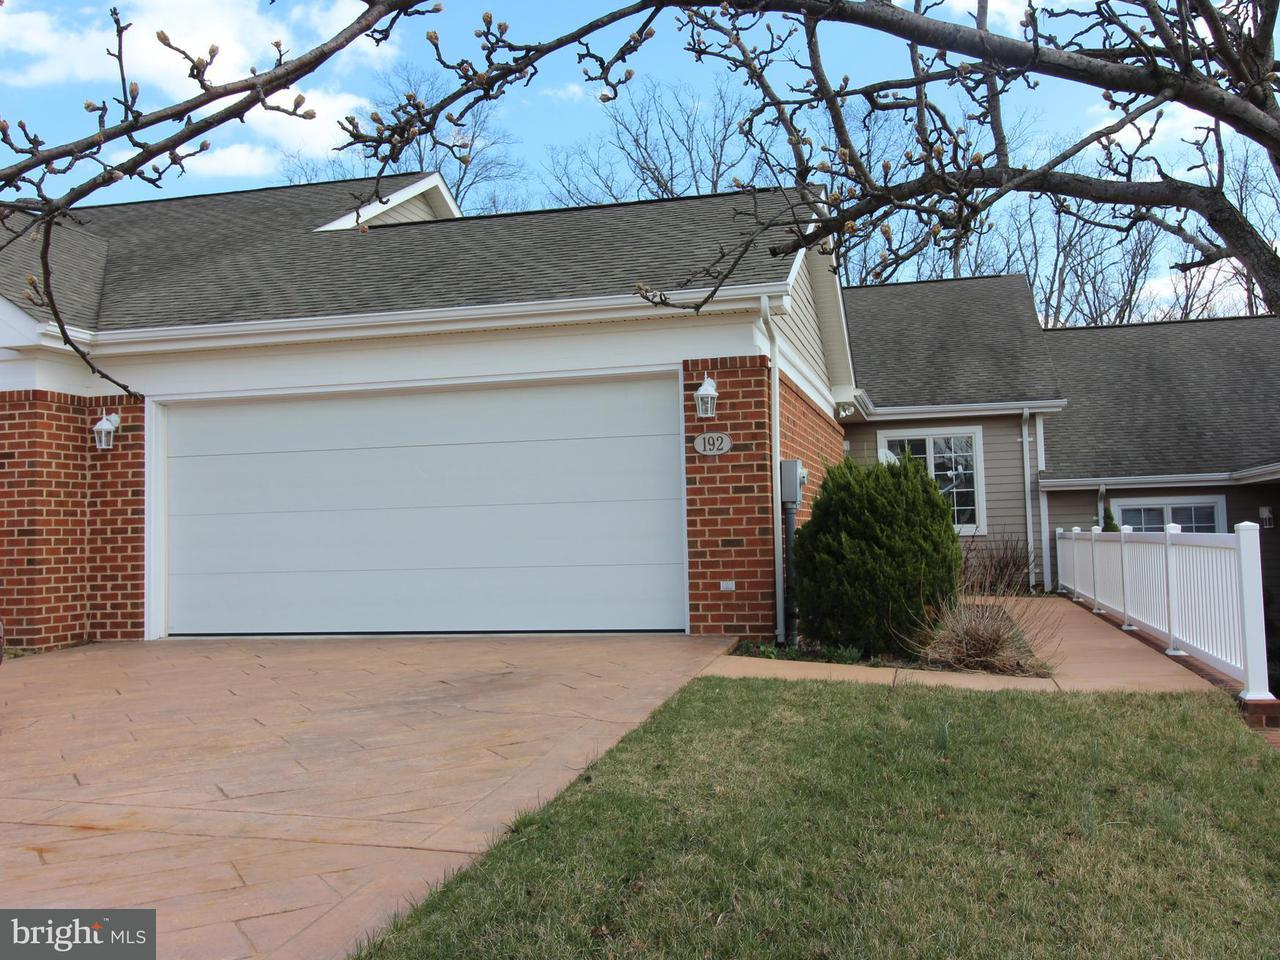 Other Residential for Rent at 192 Stony Pointe Way Strasburg, Virginia 22657 United States